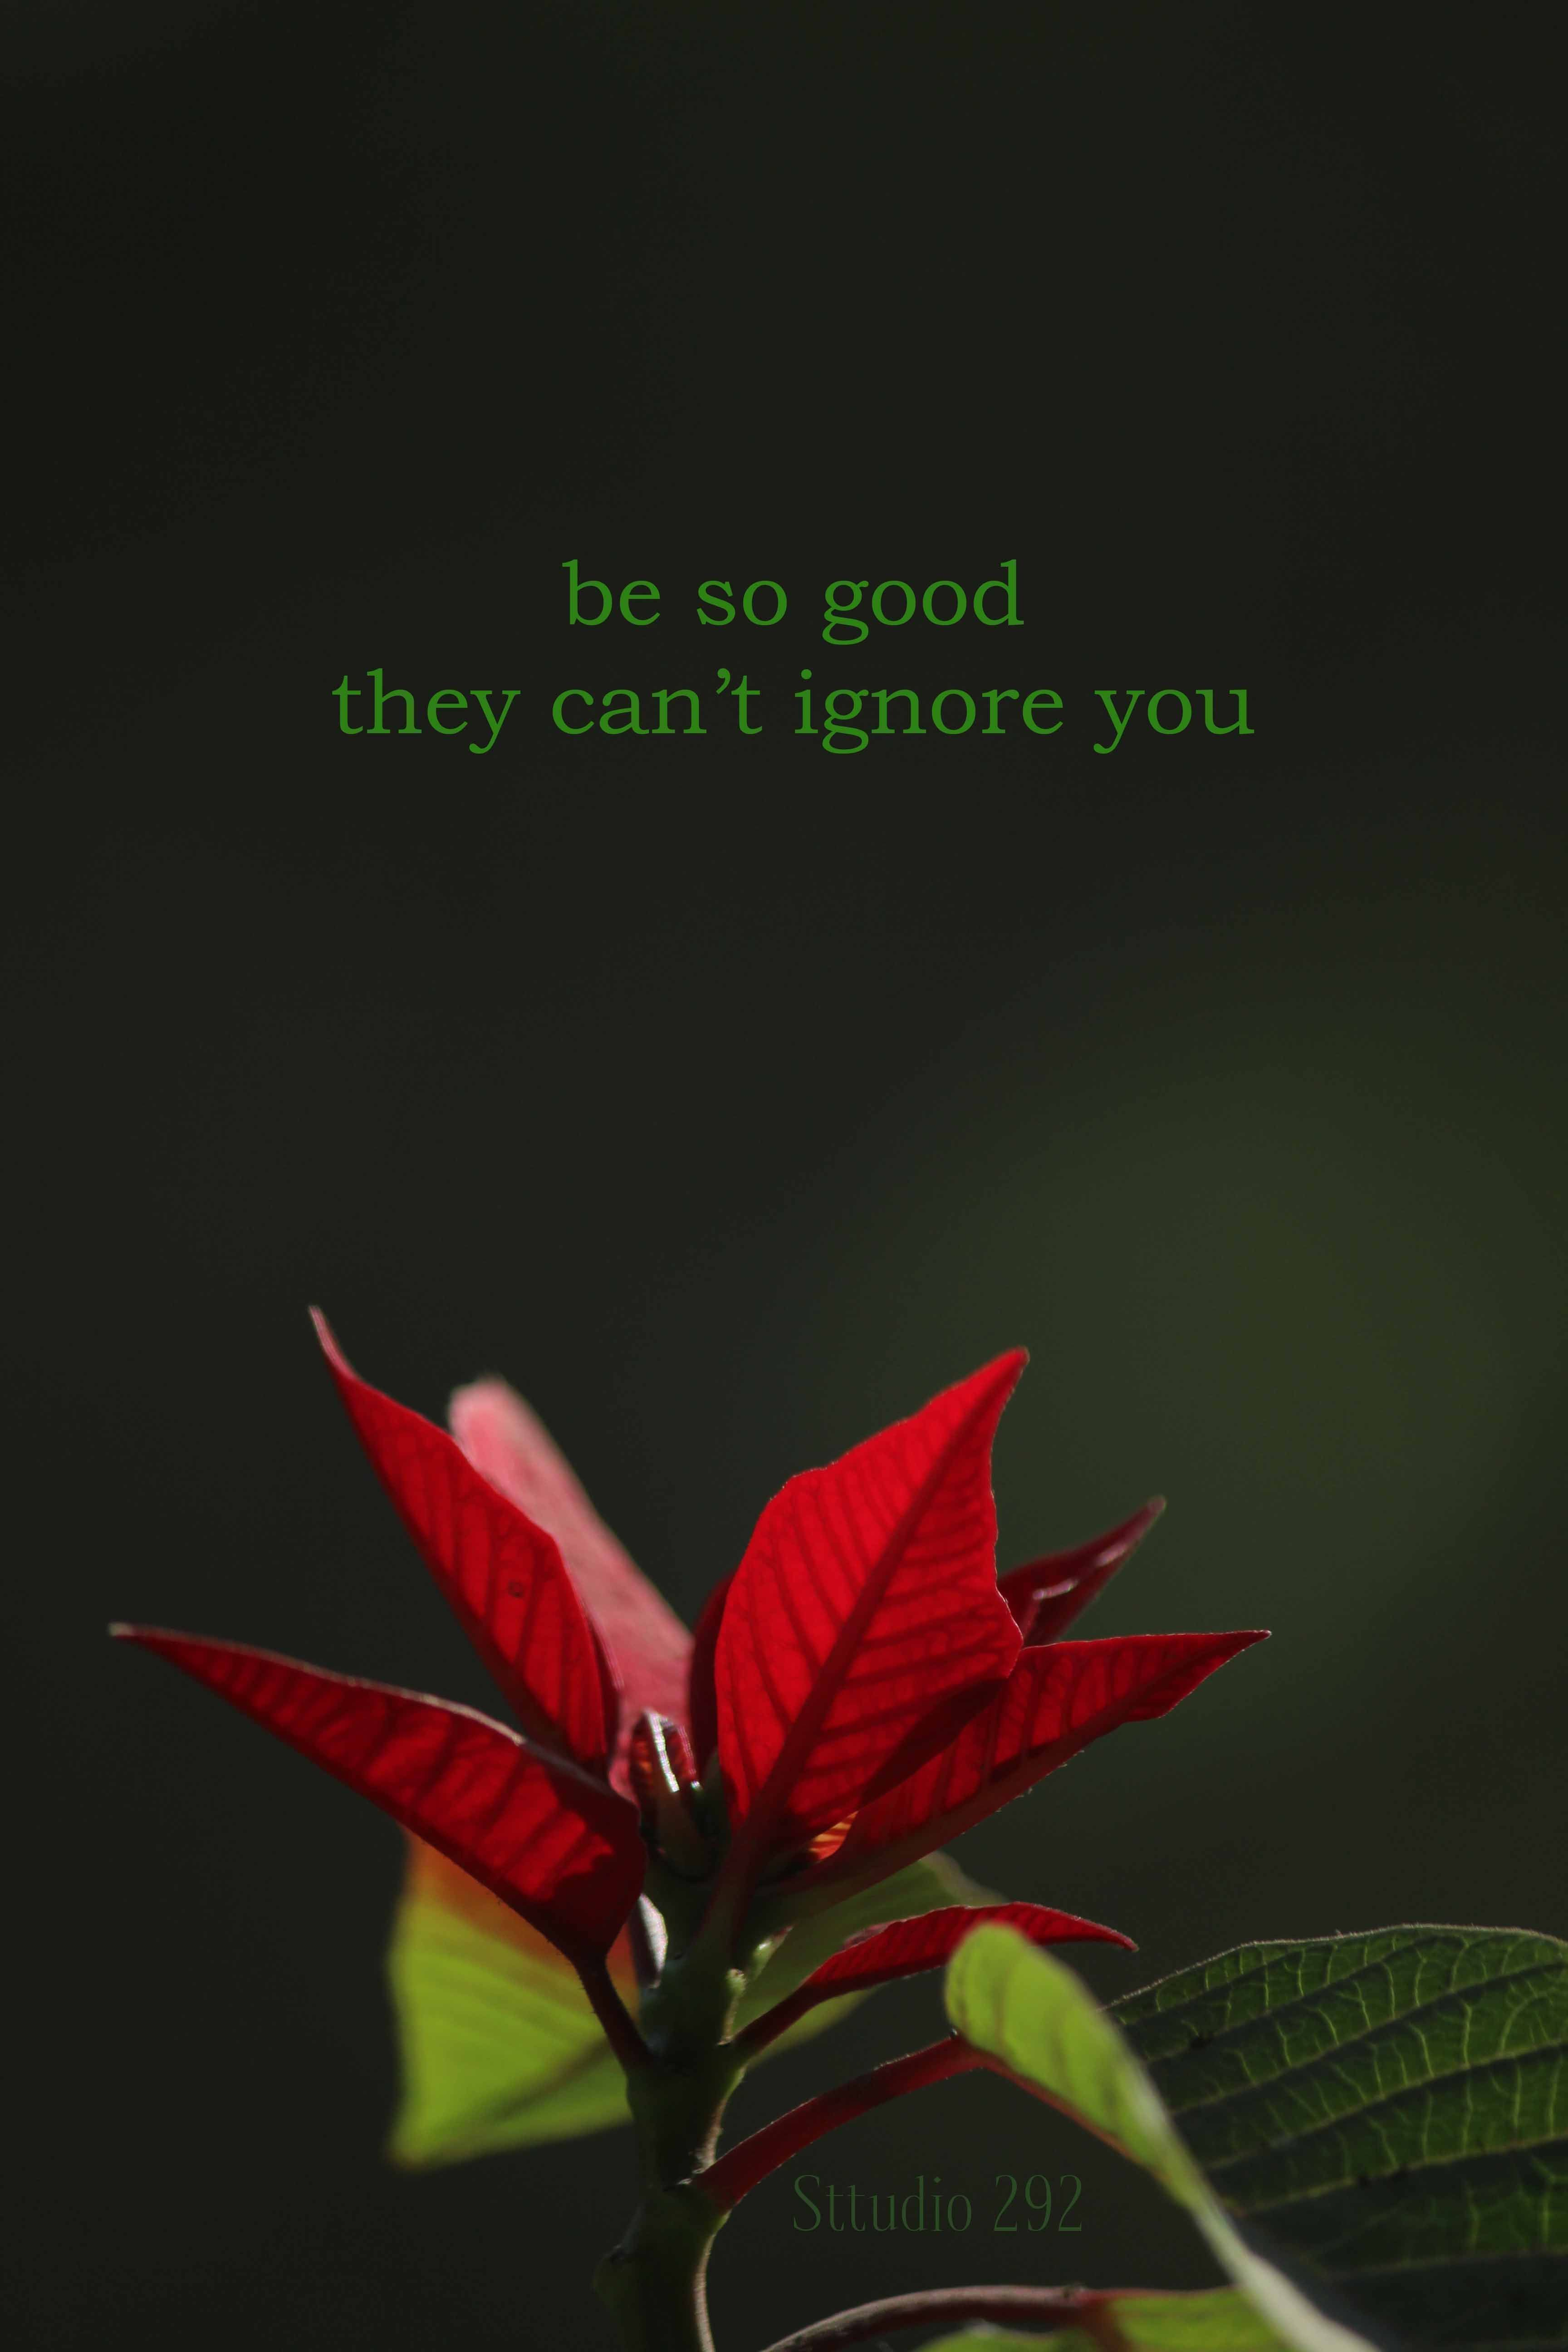 Poinsettia inspirational quotes for 2018 beautiful flowers poinsettia inspirational quotes for 2018 beautiful flowers beautiful flowers with quotes flower izmirmasajfo